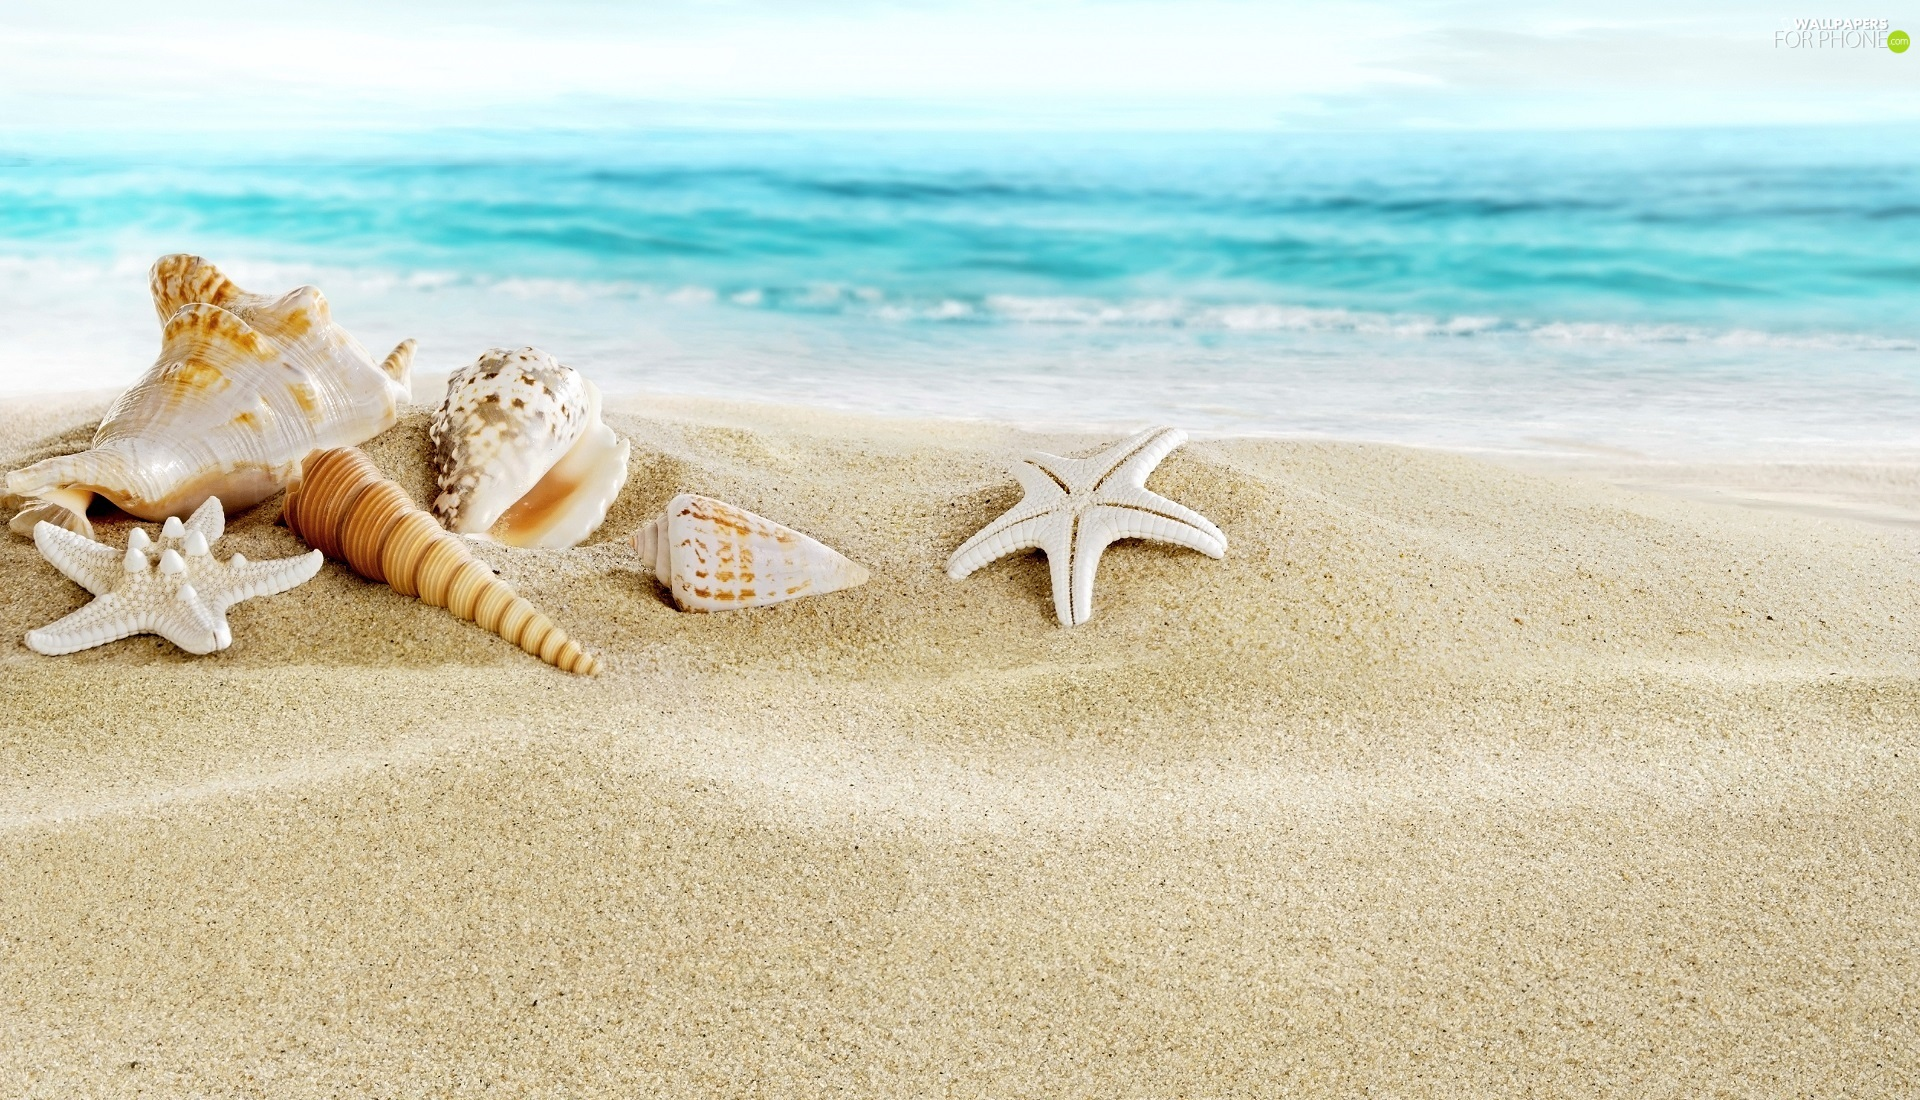 Shells, Sand, sea, starfish